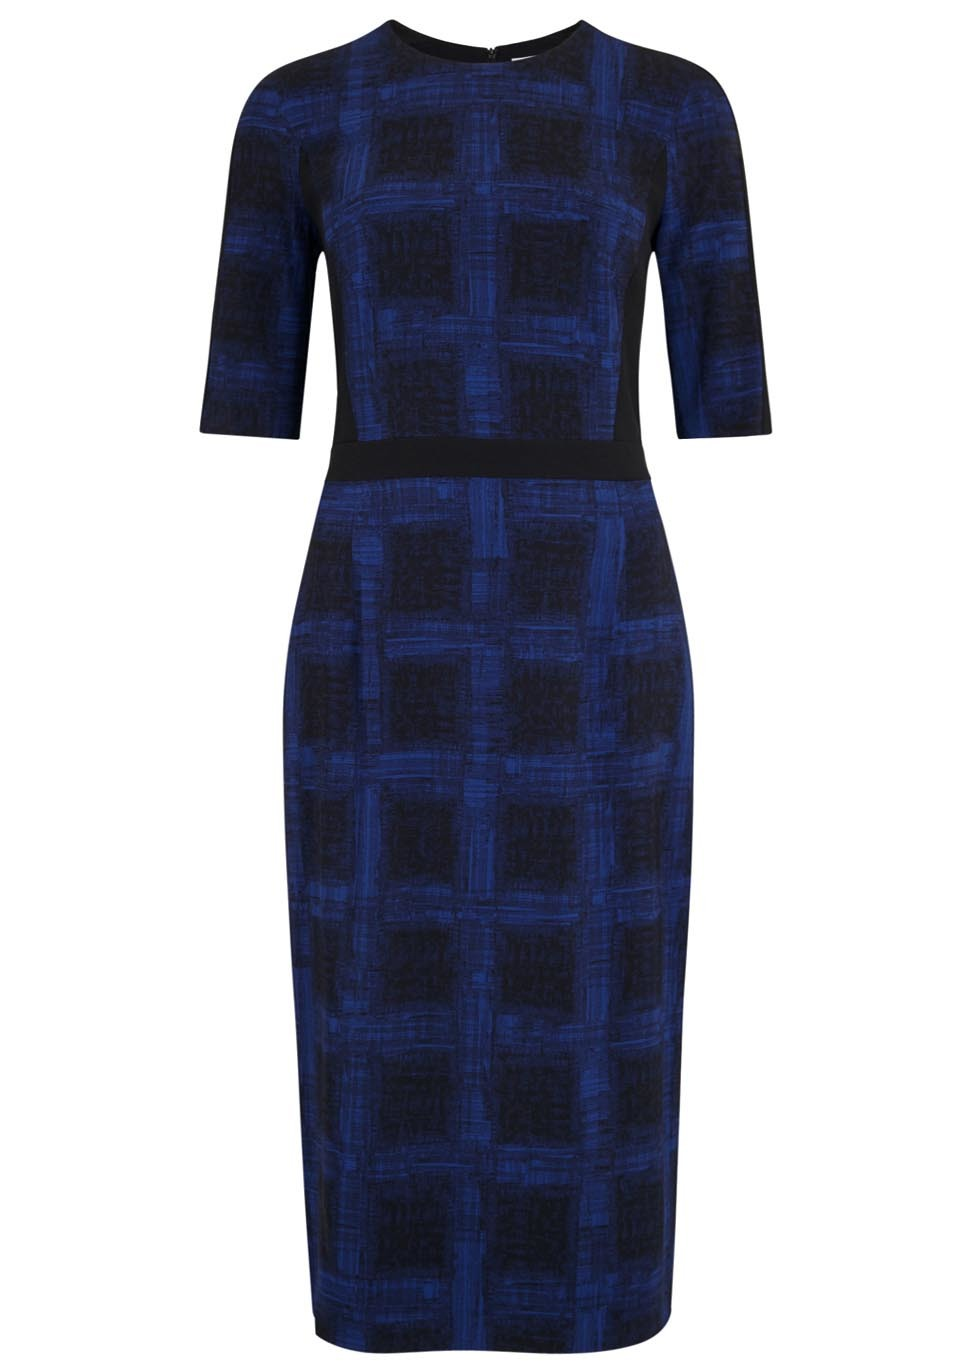 Black And Blue Printed Crepe Dress - style: shift; length: below the knee; pattern: checked/gingham; secondary colour: royal blue; predominant colour: black; occasions: evening; fit: body skimming; fibres: viscose/rayon - stretch; neckline: crew; sleeve length: short sleeve; sleeve style: standard; pattern type: fabric; texture group: woven light midweight; multicoloured: multicoloured; season: a/w 2015; wardrobe: event